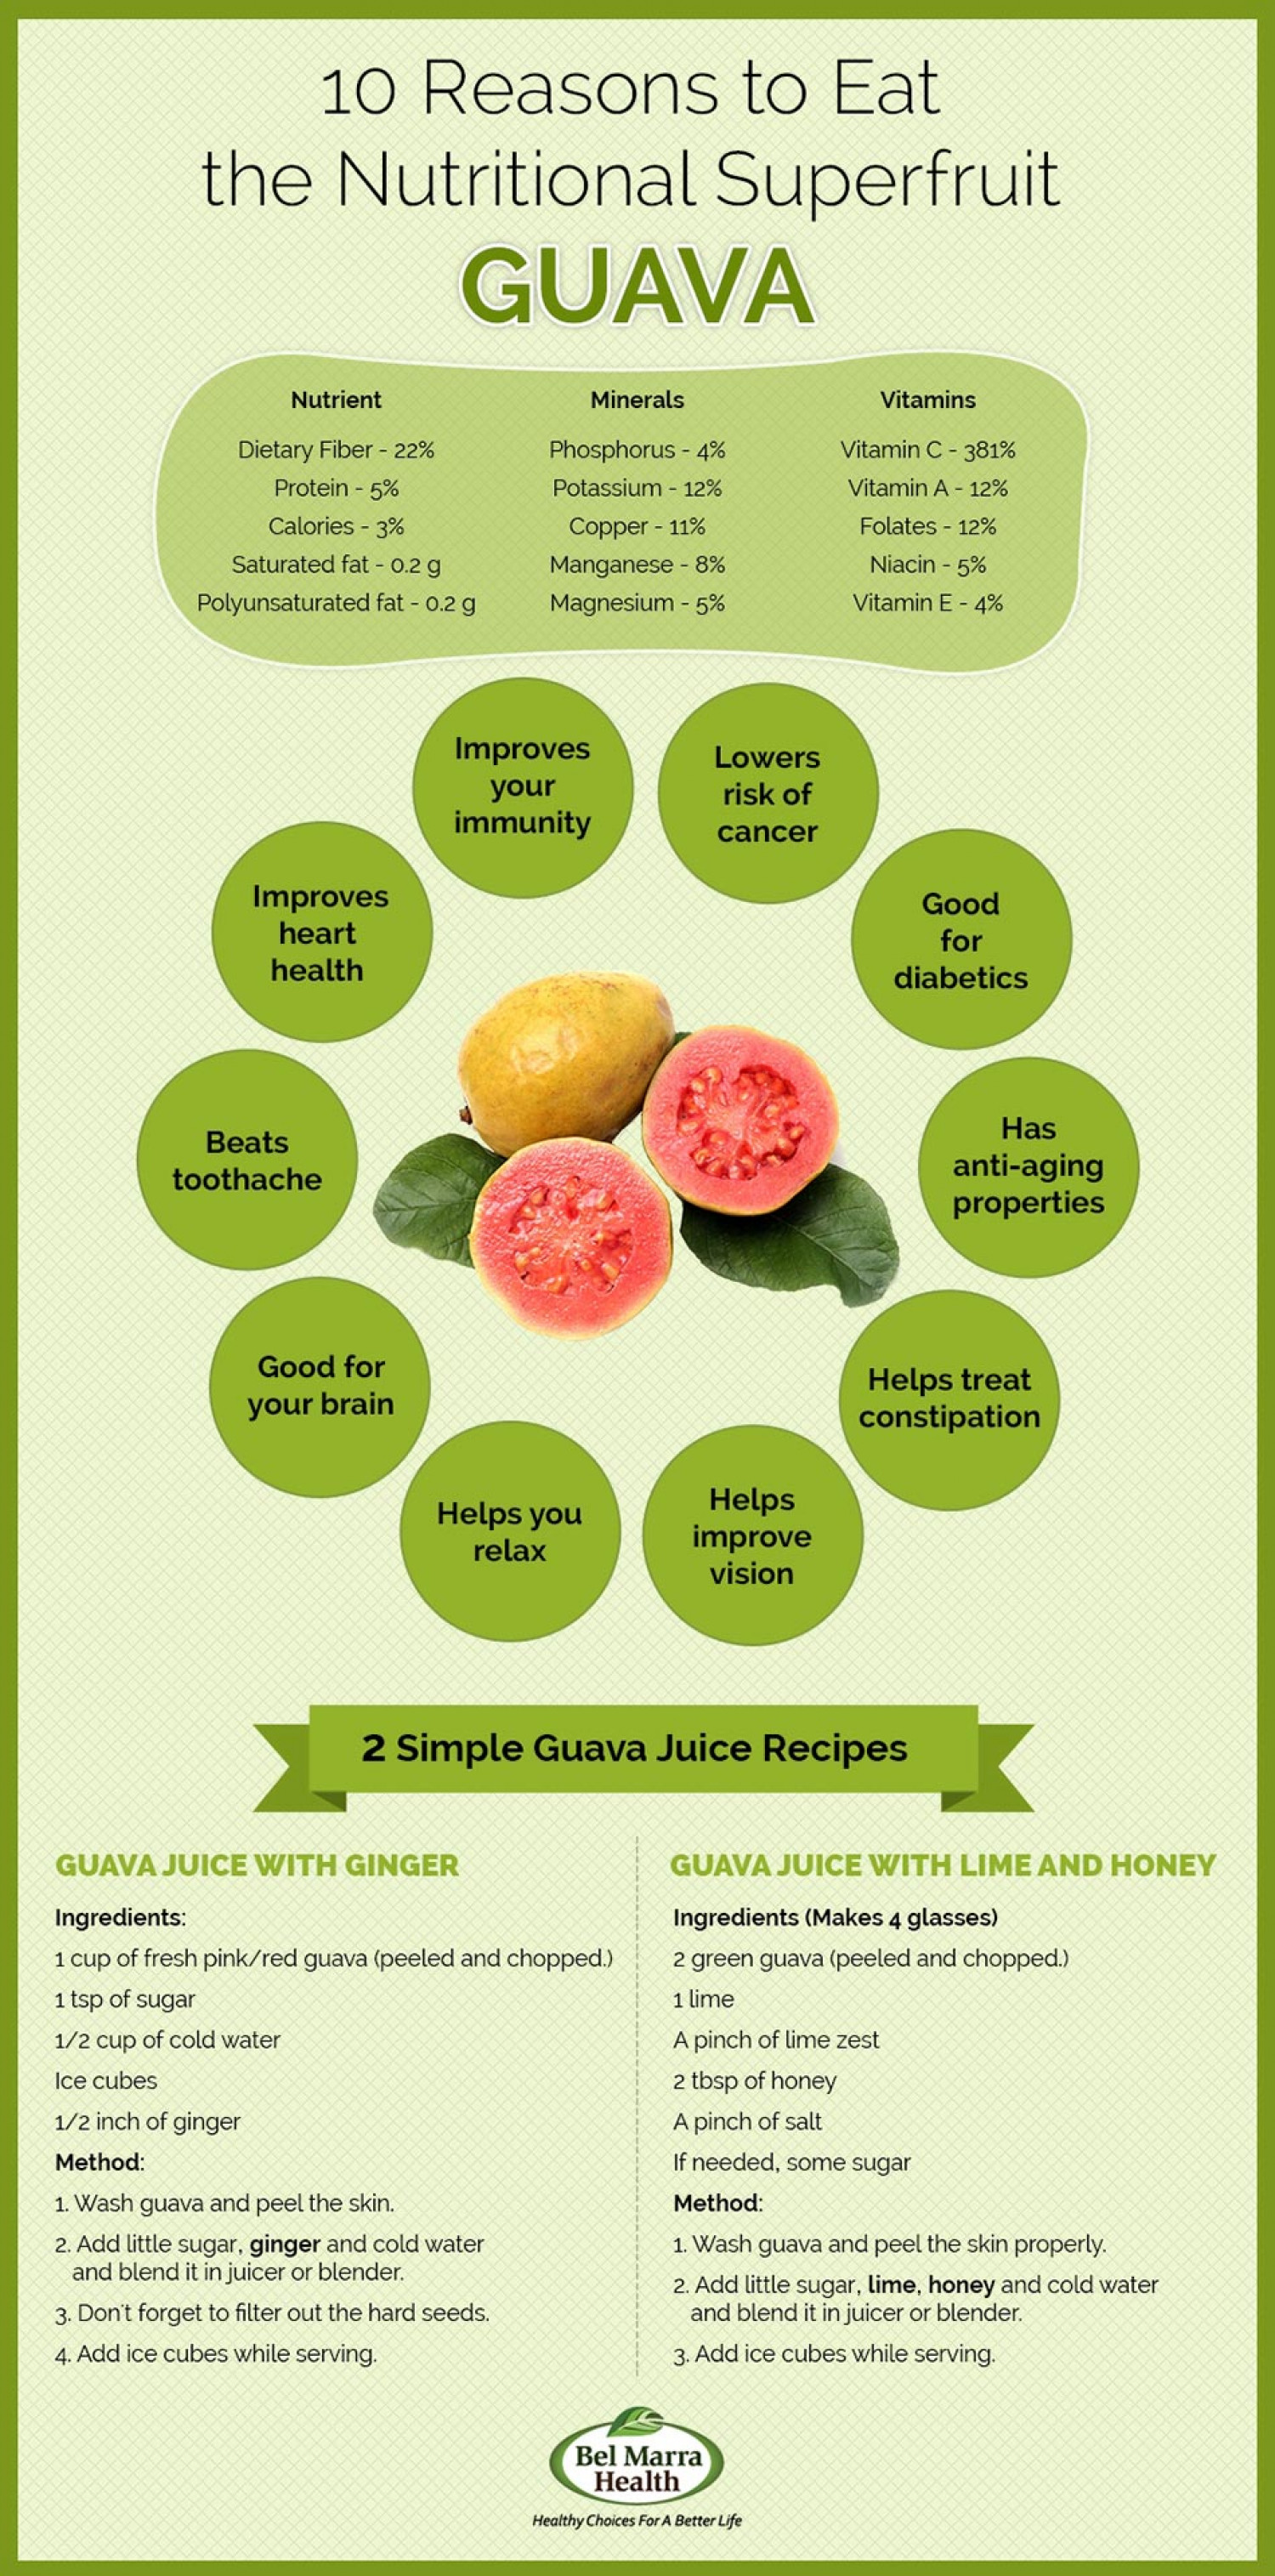 nutritional facts and health benefits of guava fruit | visual.ly